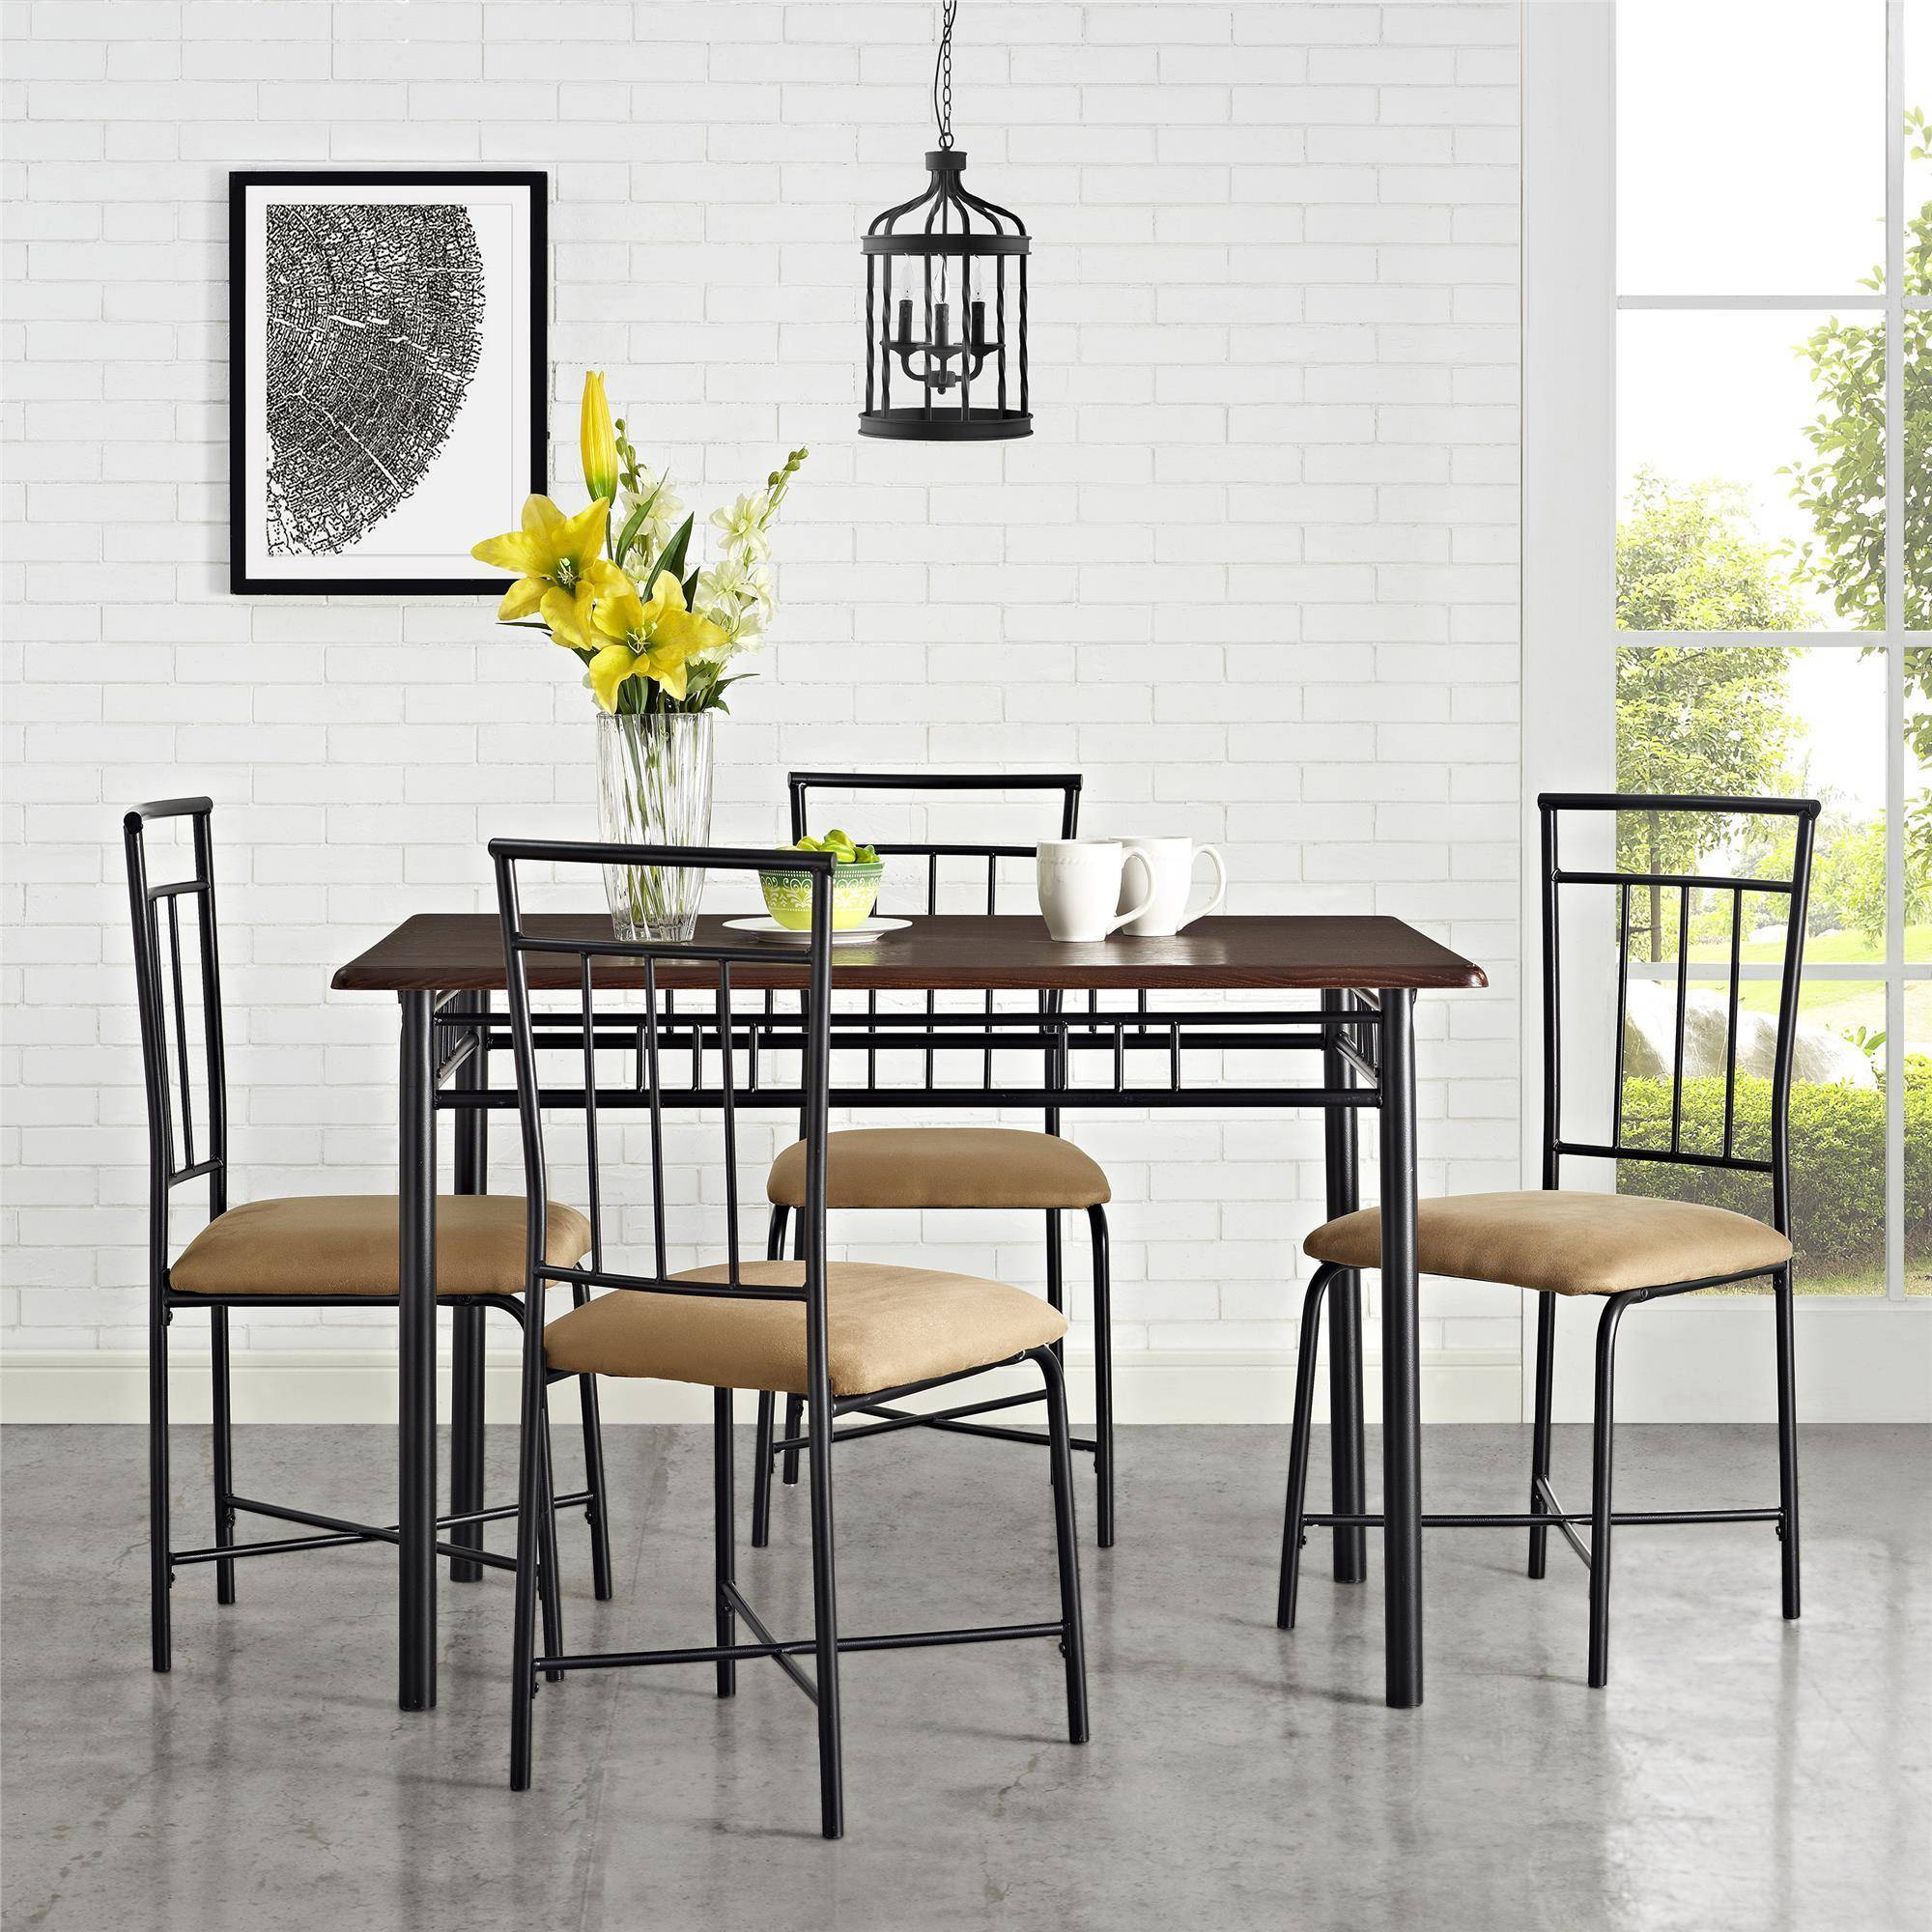 mainstays 5-piece dining set, multiple colors - walmart